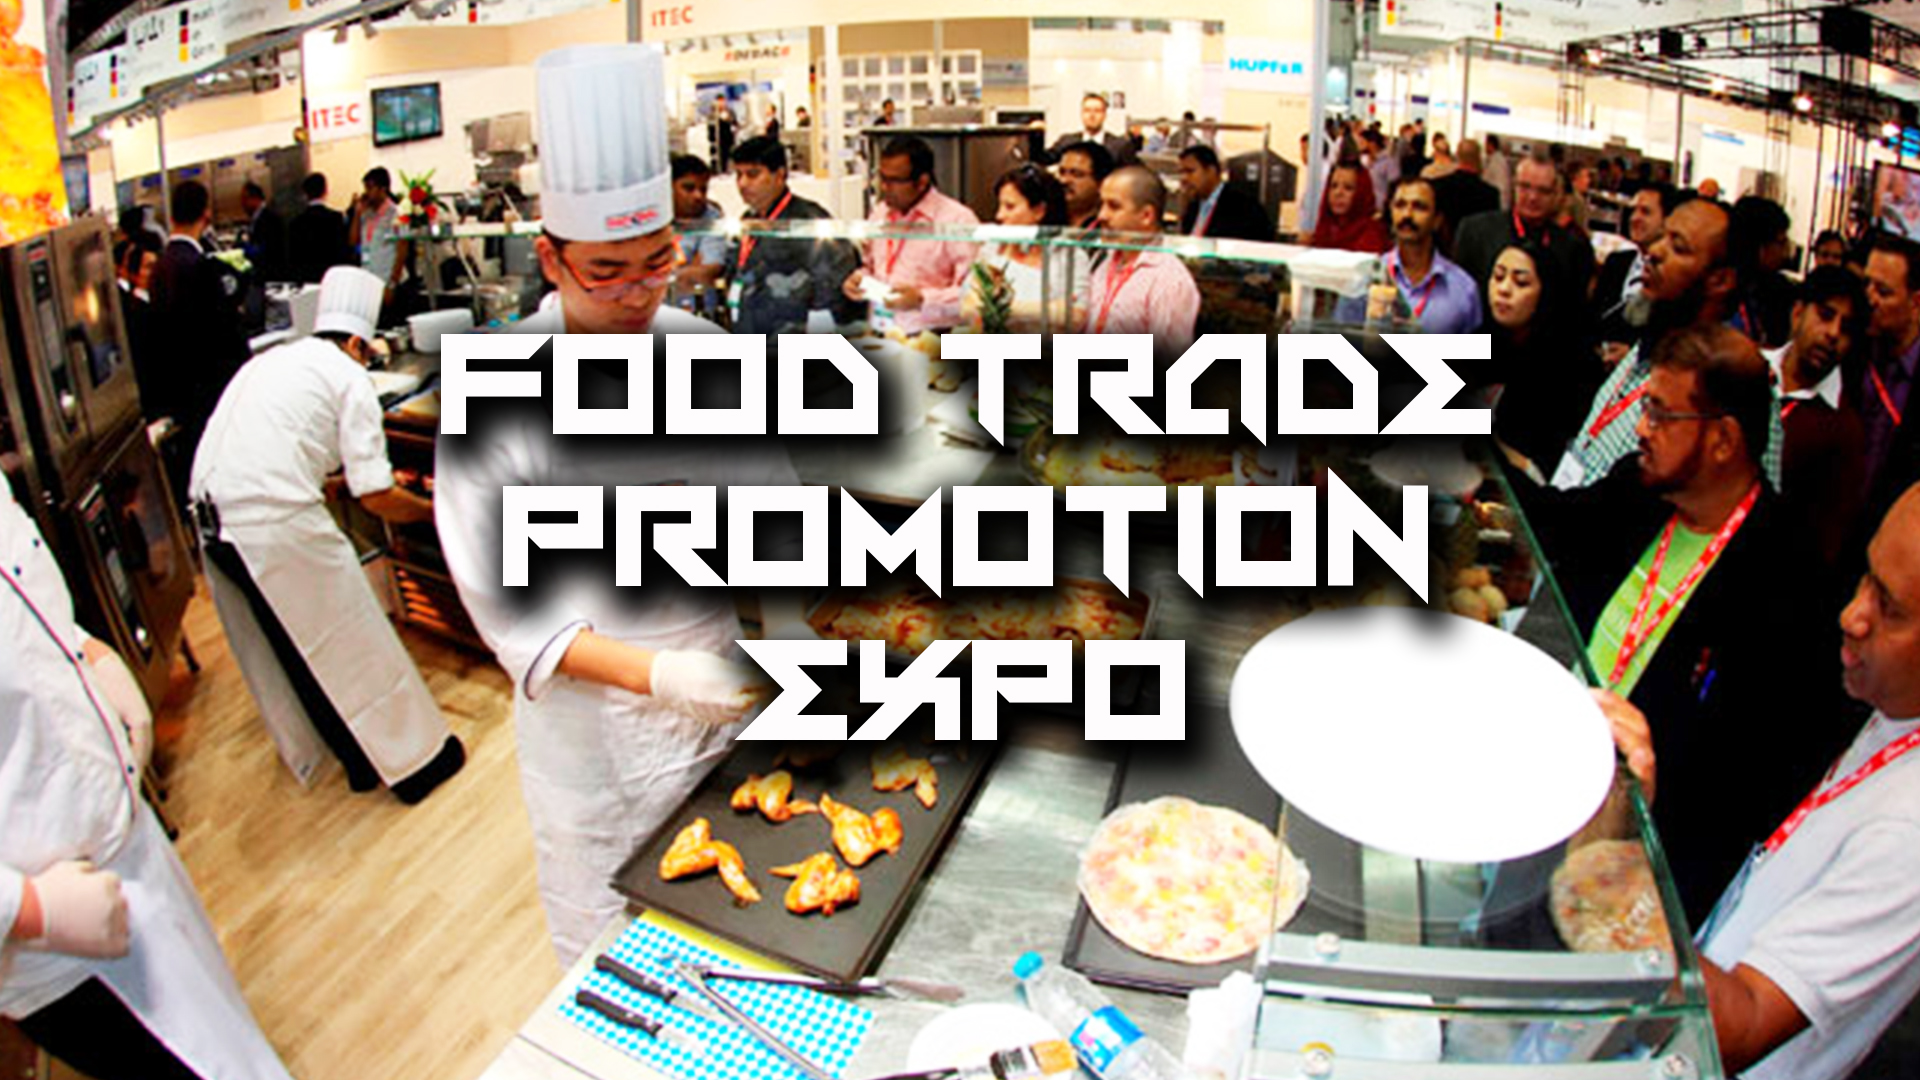 The arena provides food trade information showcase and product promotions for those who are and will be venturing into the food & hospitality industries. Up, close and personal with some of Australia's best chefs, and gain rare insights into the latest in the world of Indonesian gastronomy.